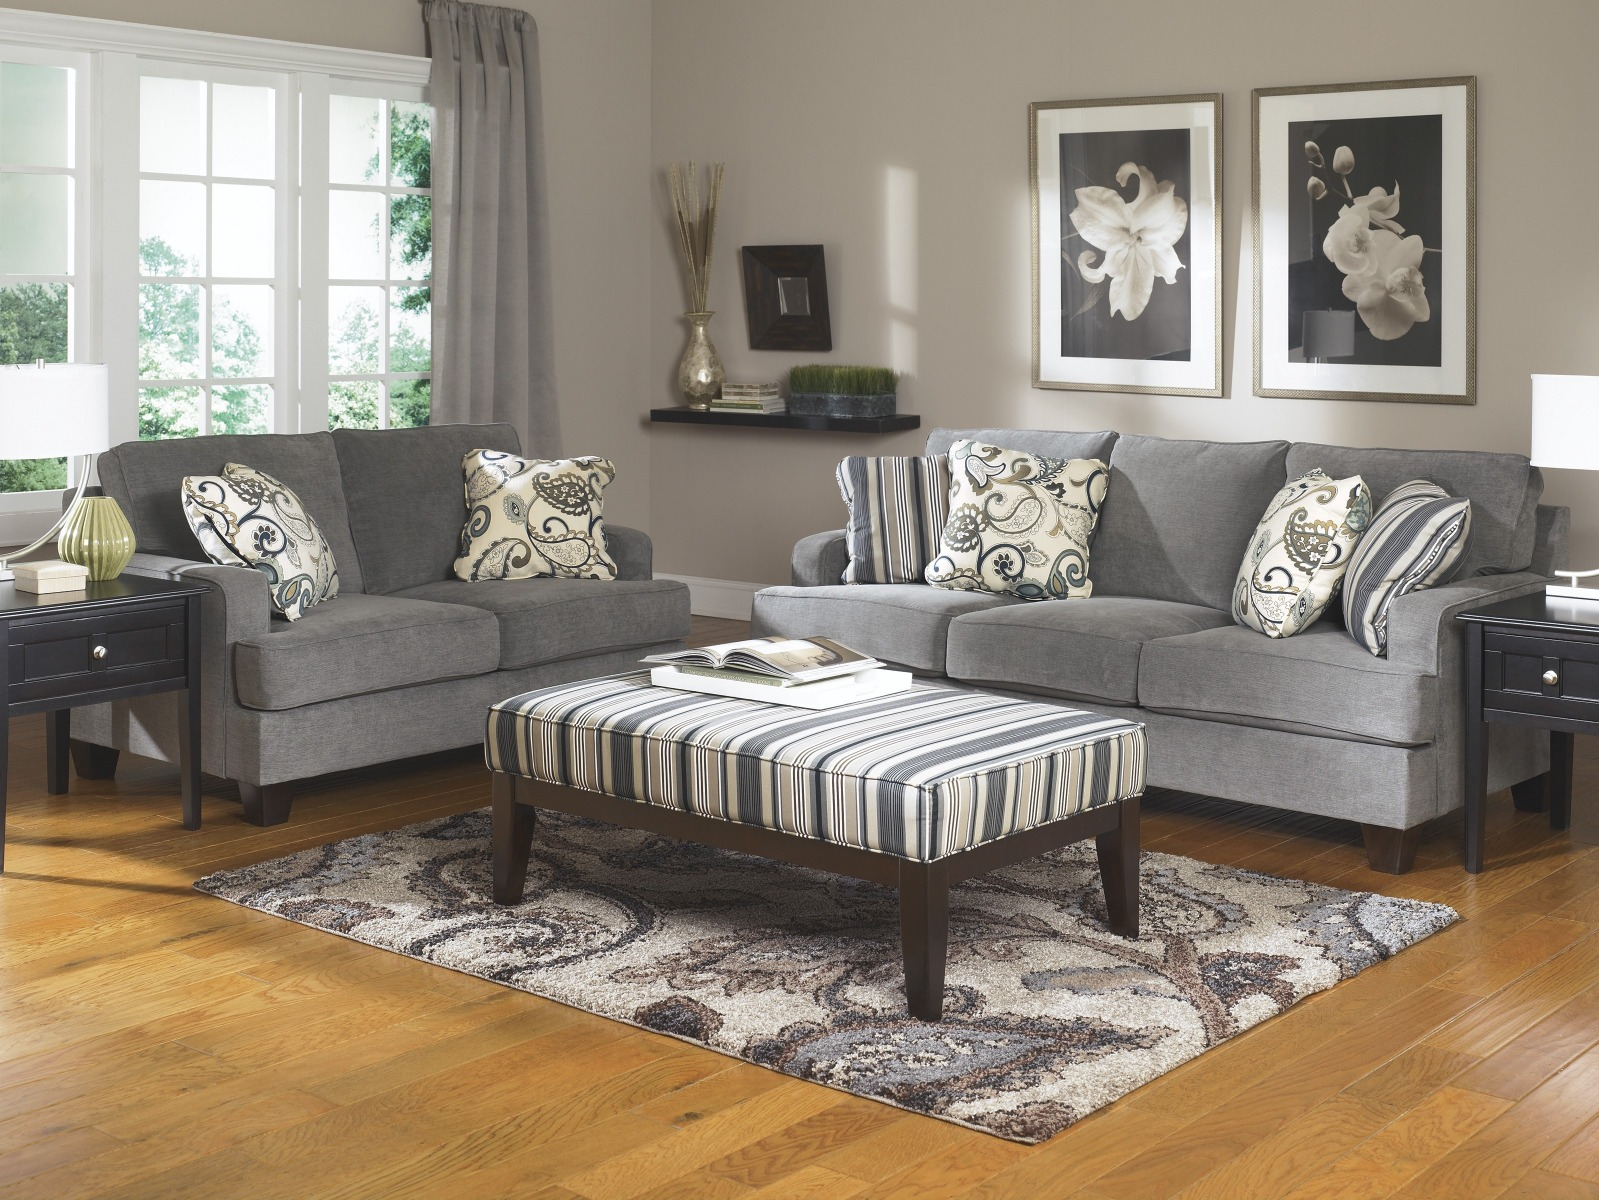 furniture home ideas solid country gingko bix of ashley opelousas la 8